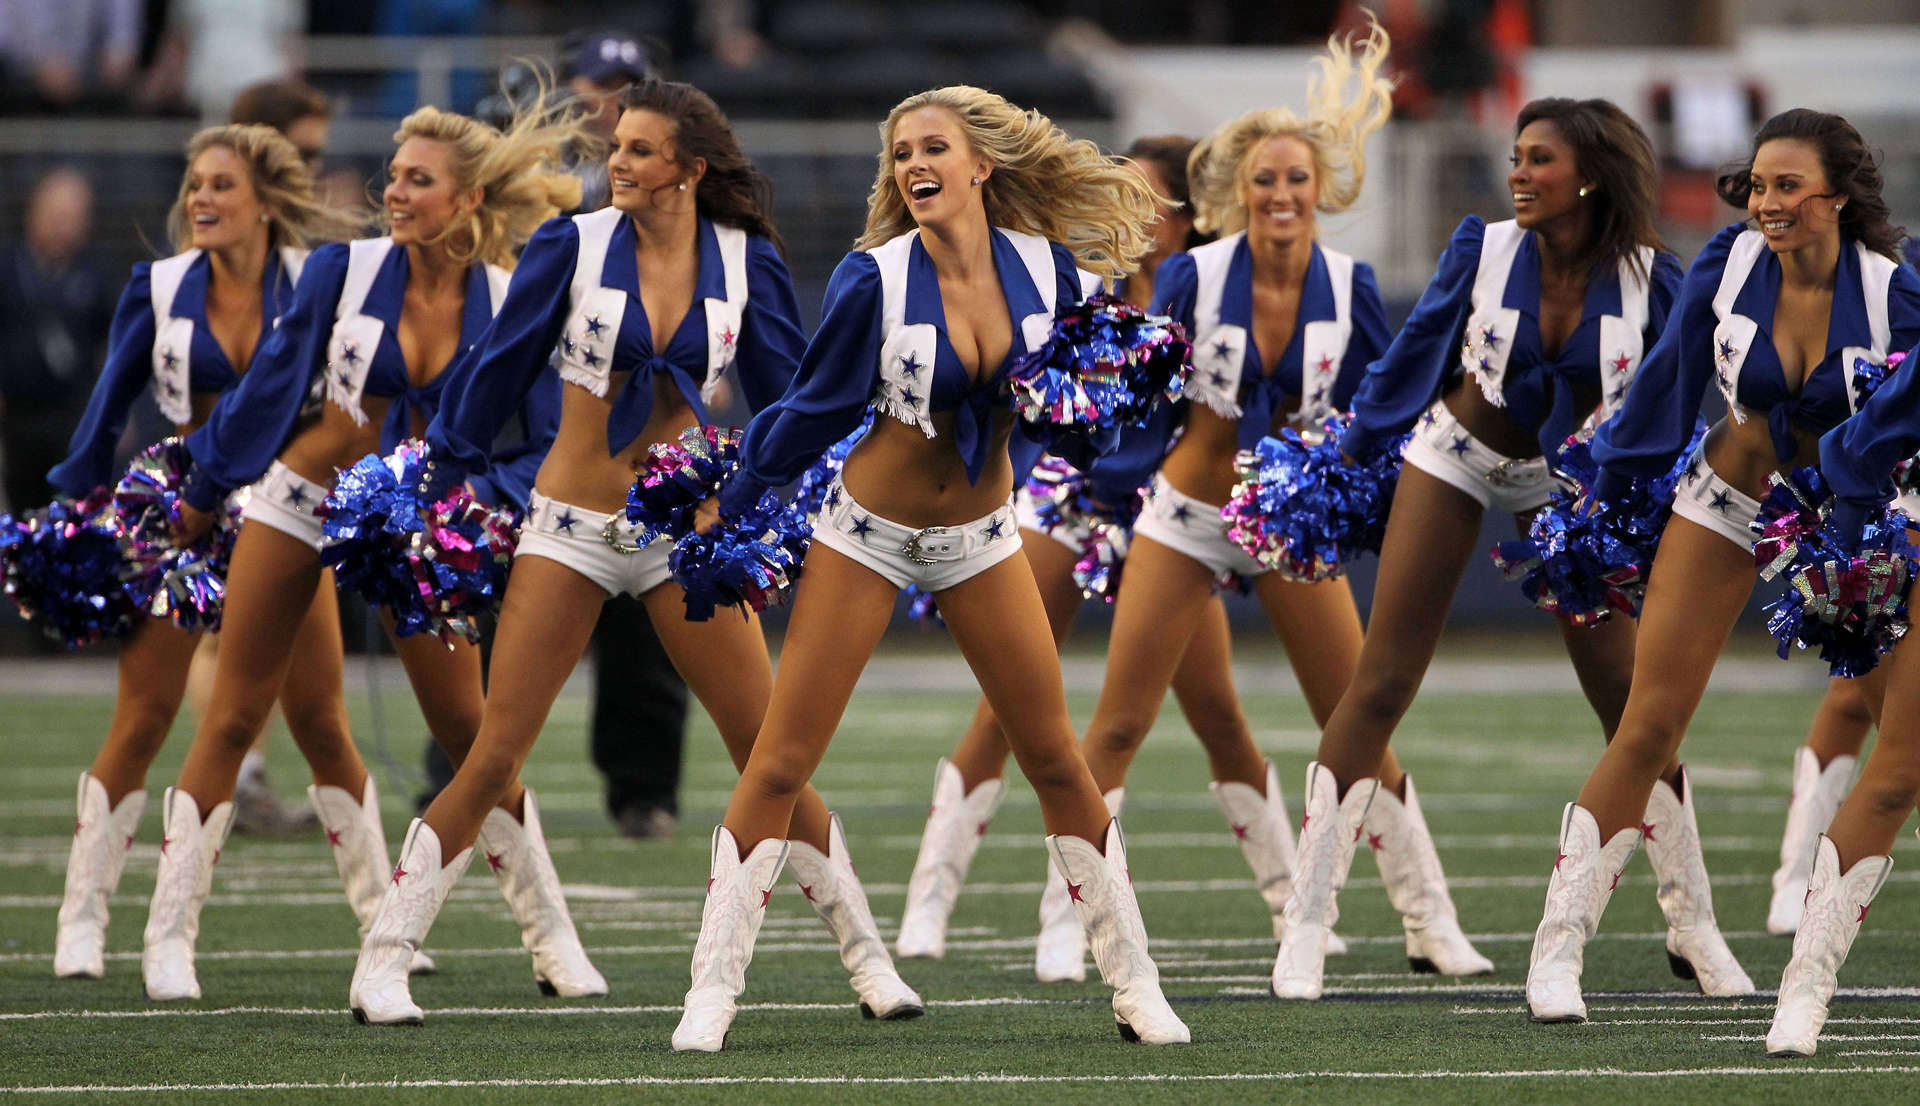 Dallas Cowboys Cheerleaders Wallpaper